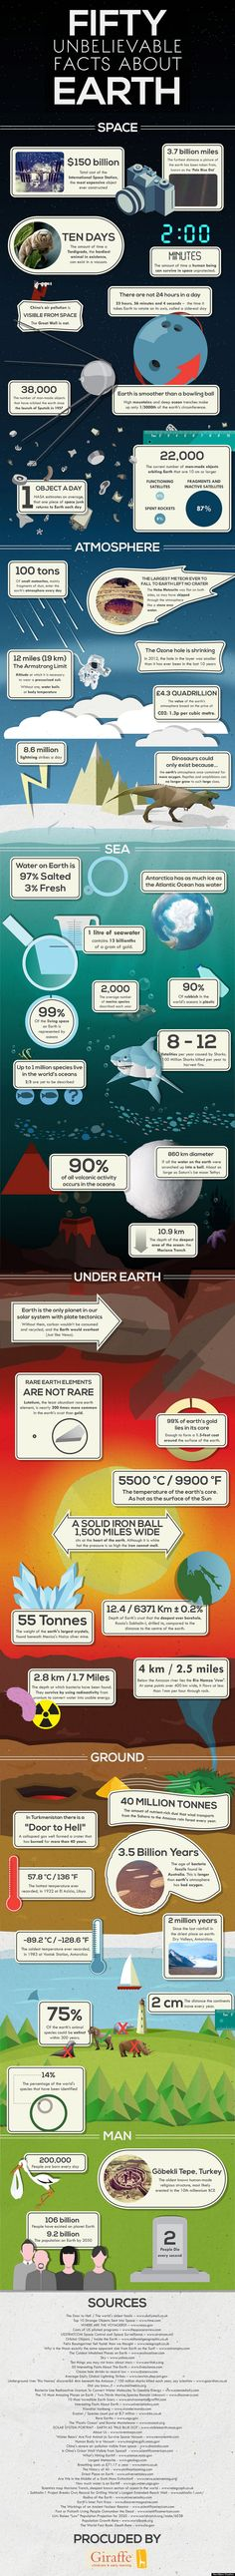 Facts About The Planet Earth